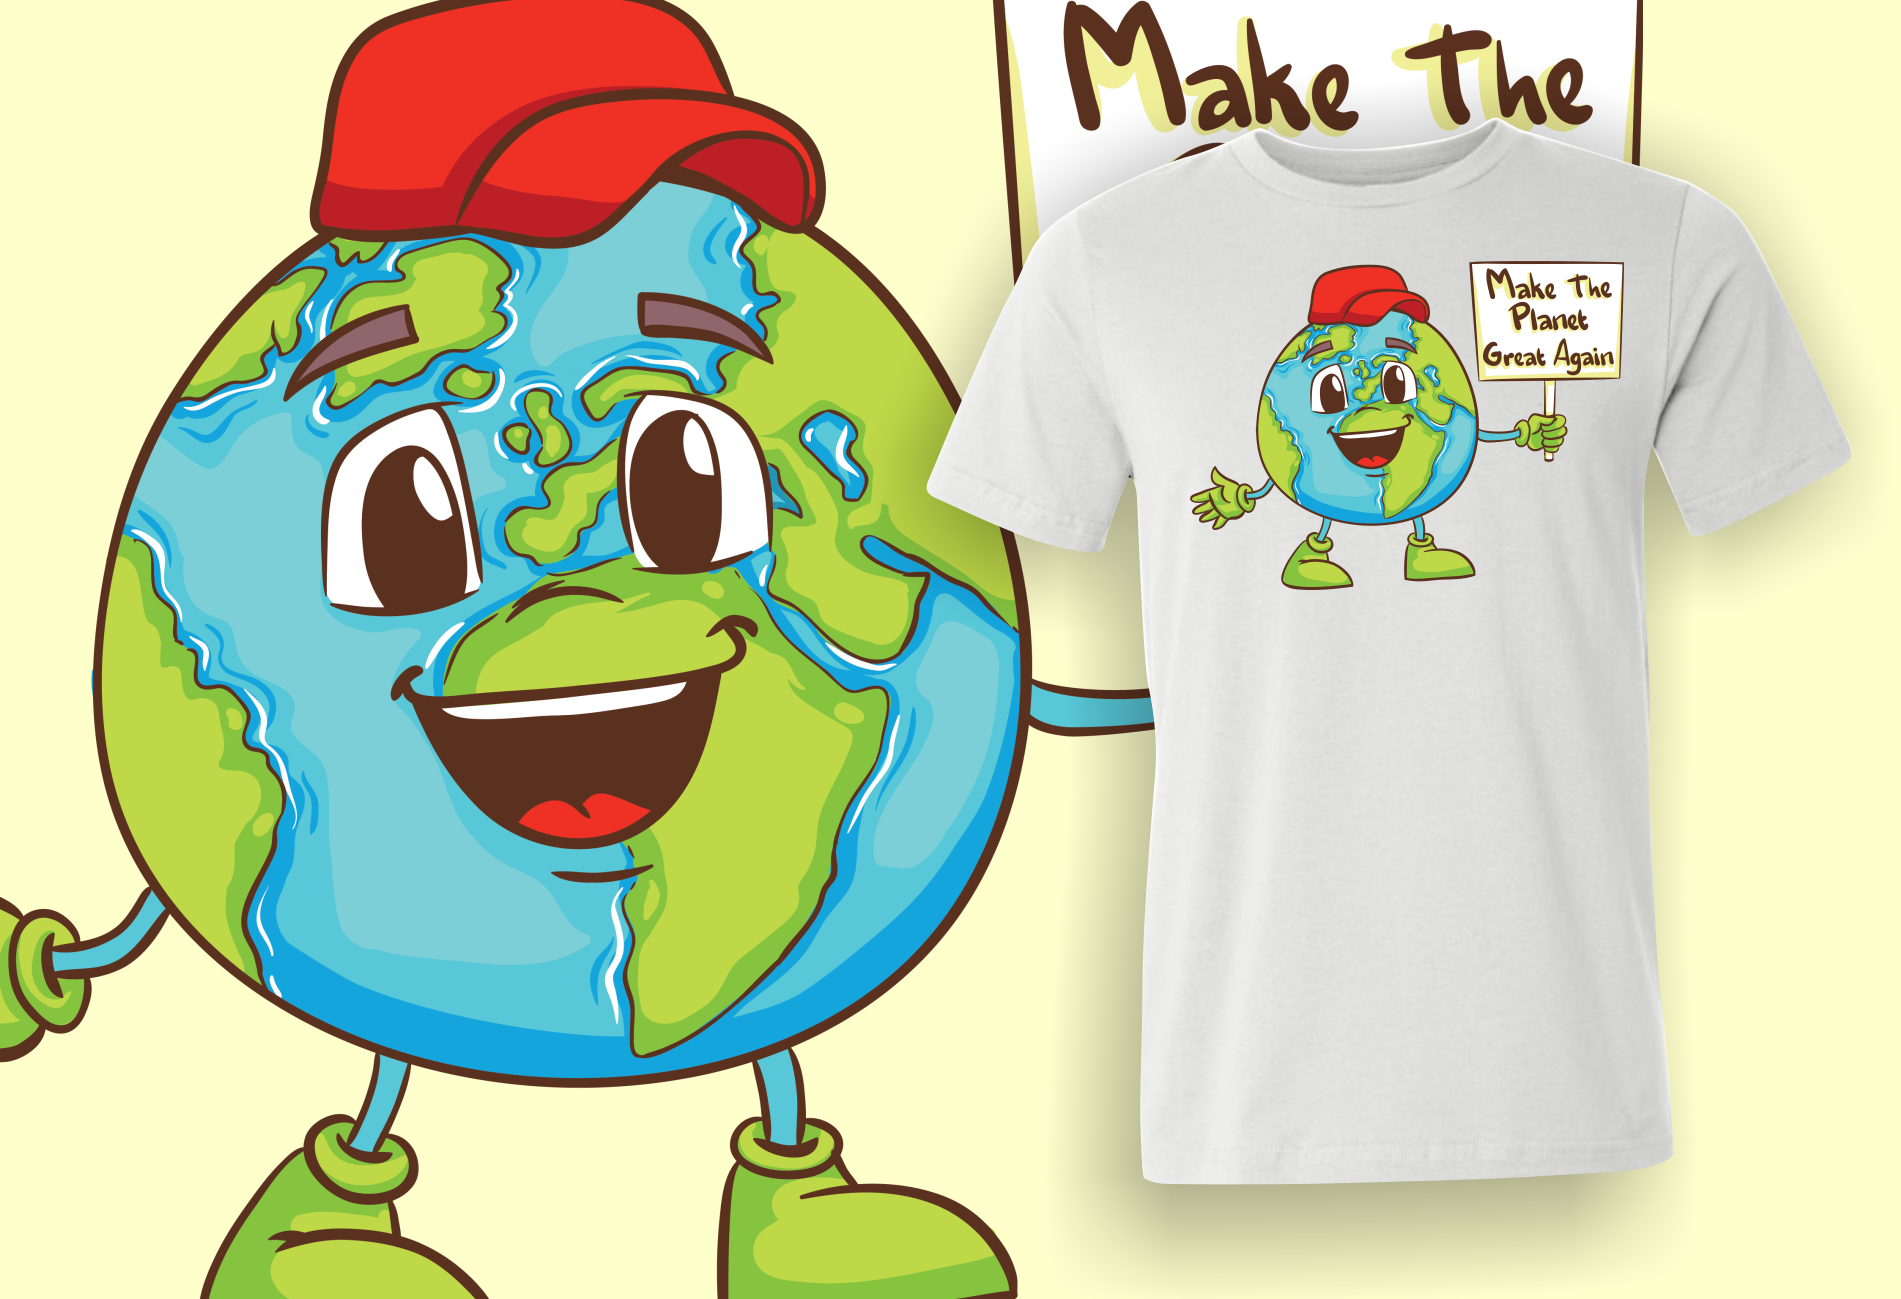 Make the planet great again t-shirt.